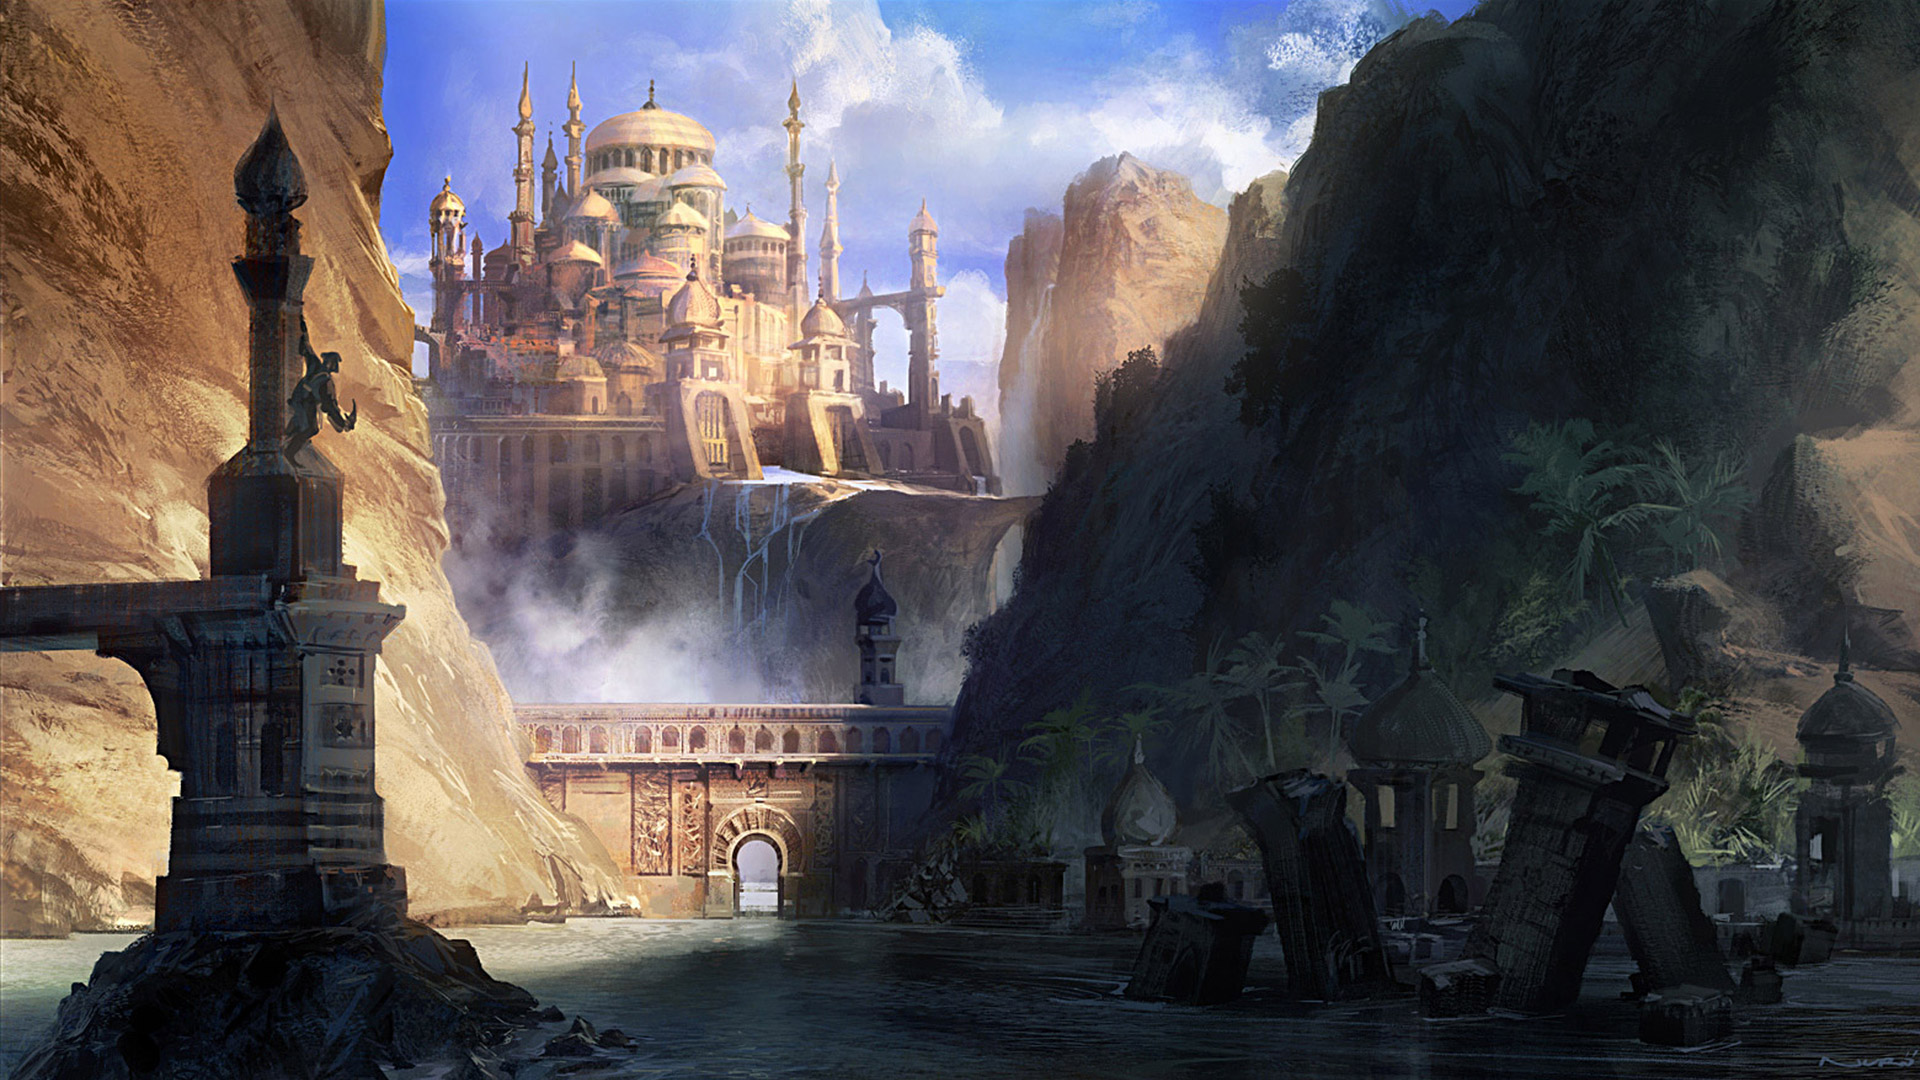 Prince of Persia: The Forgotten Sands Wallpaper in 1920x1080